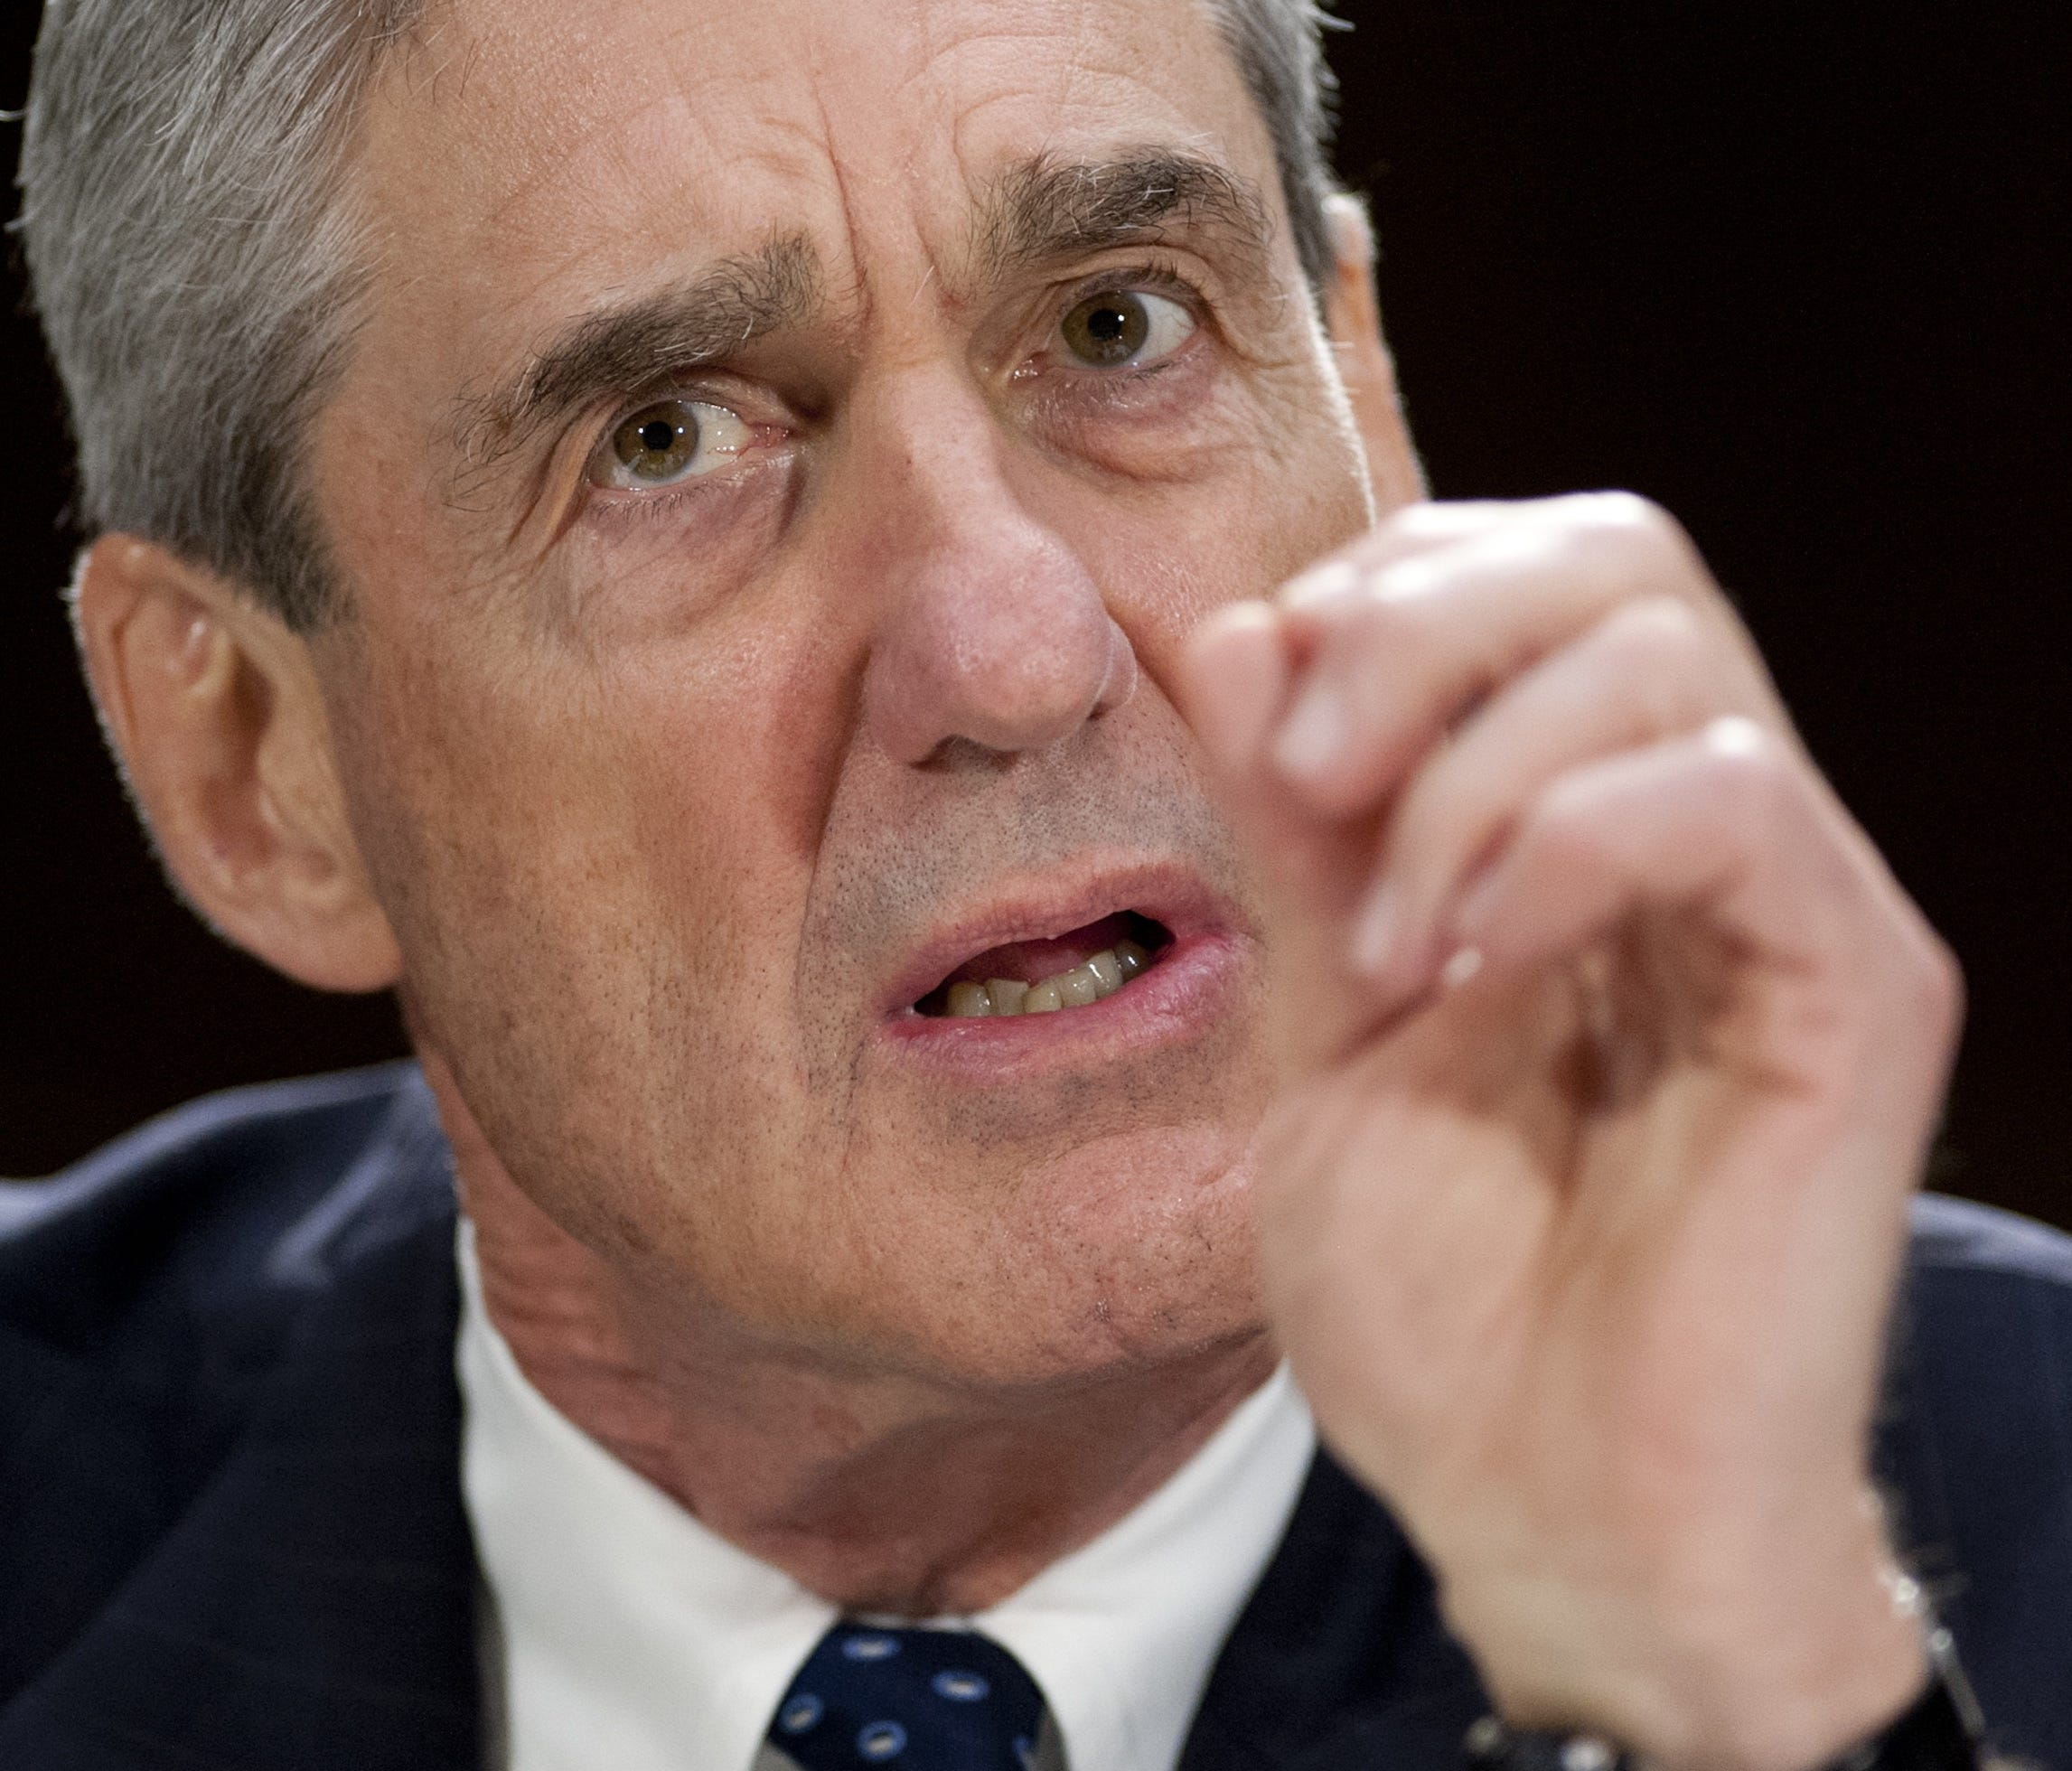 Then-FBI Director Robert Mueller testifying before the Senate Judiciary Committee on Capitol Hill in Washington.